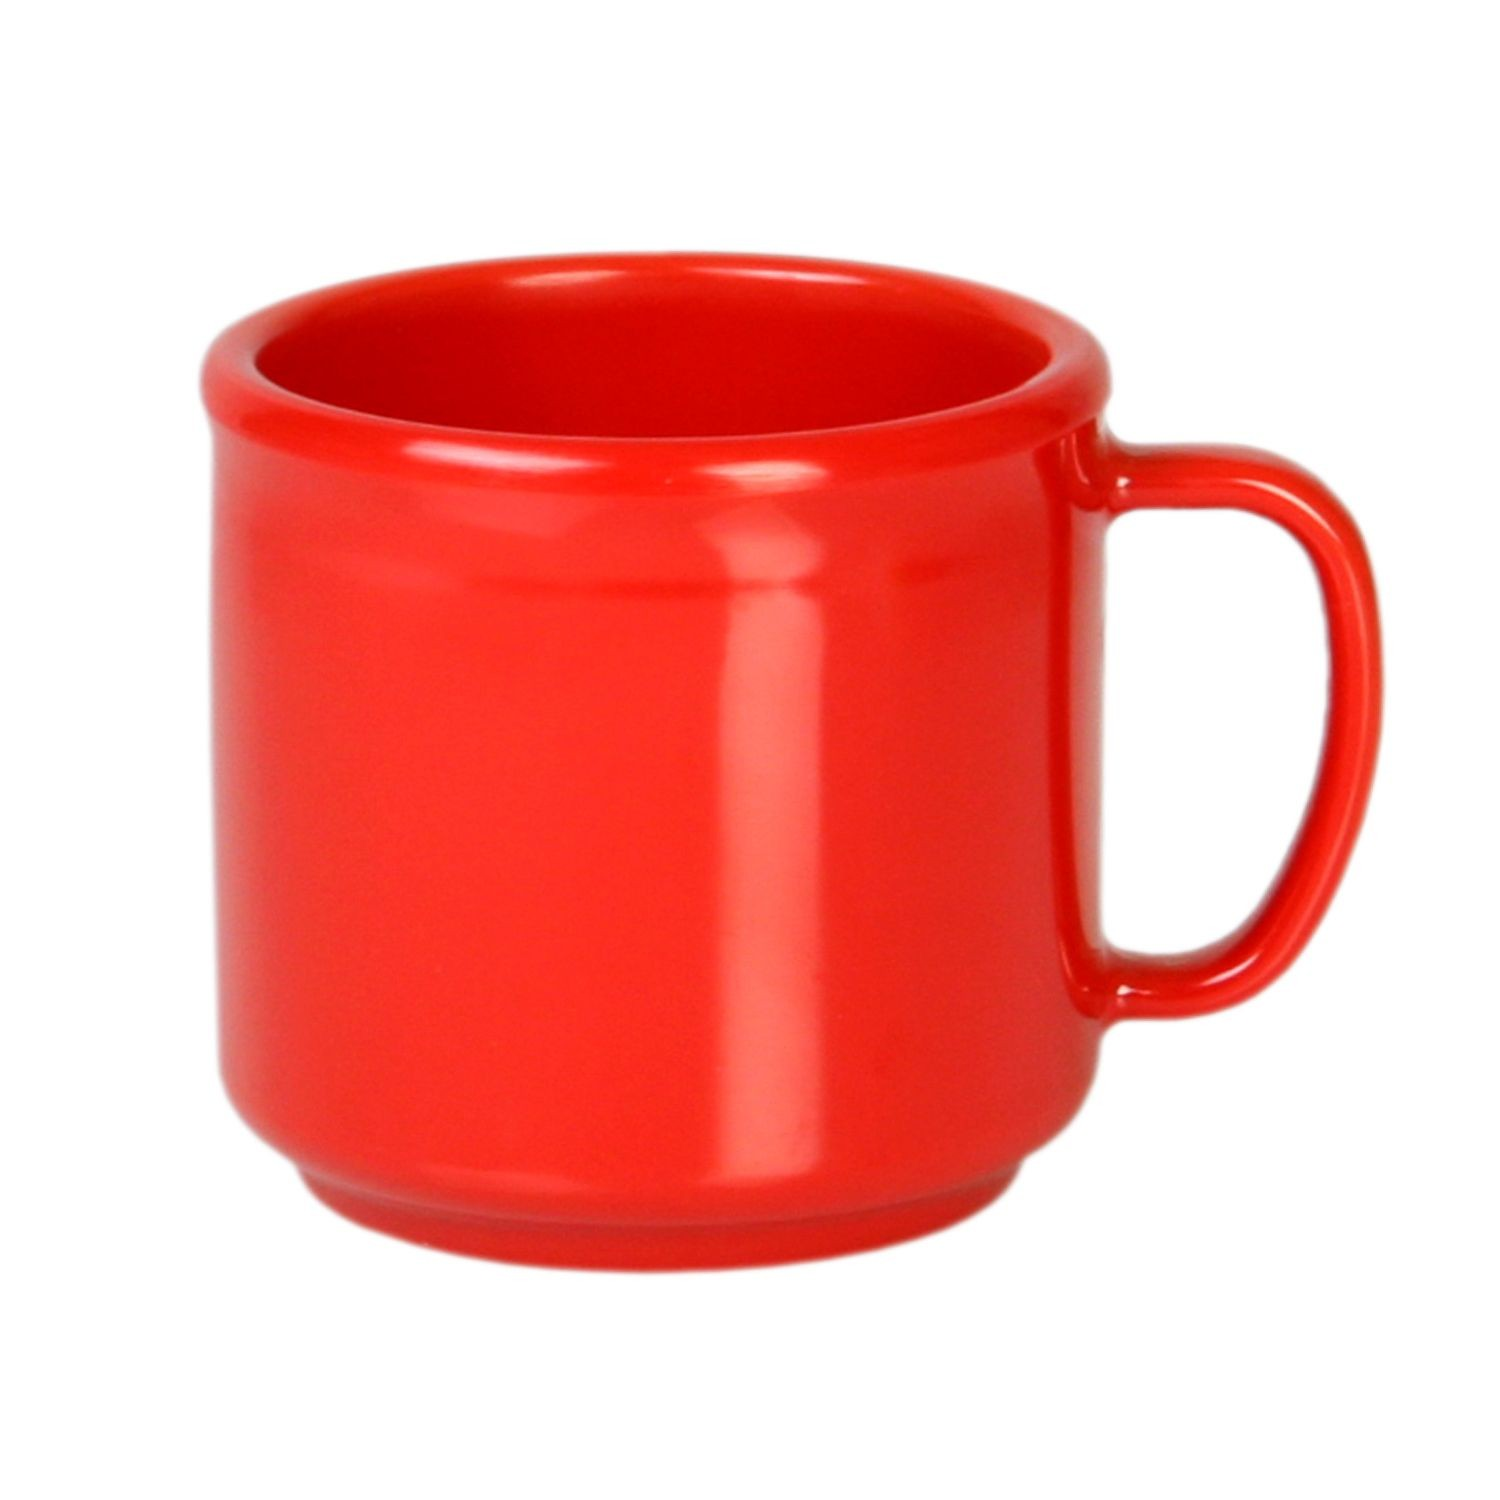 Thunder Group CR9035PR Pure Red Melamine Mug 10 oz. - 1 doz